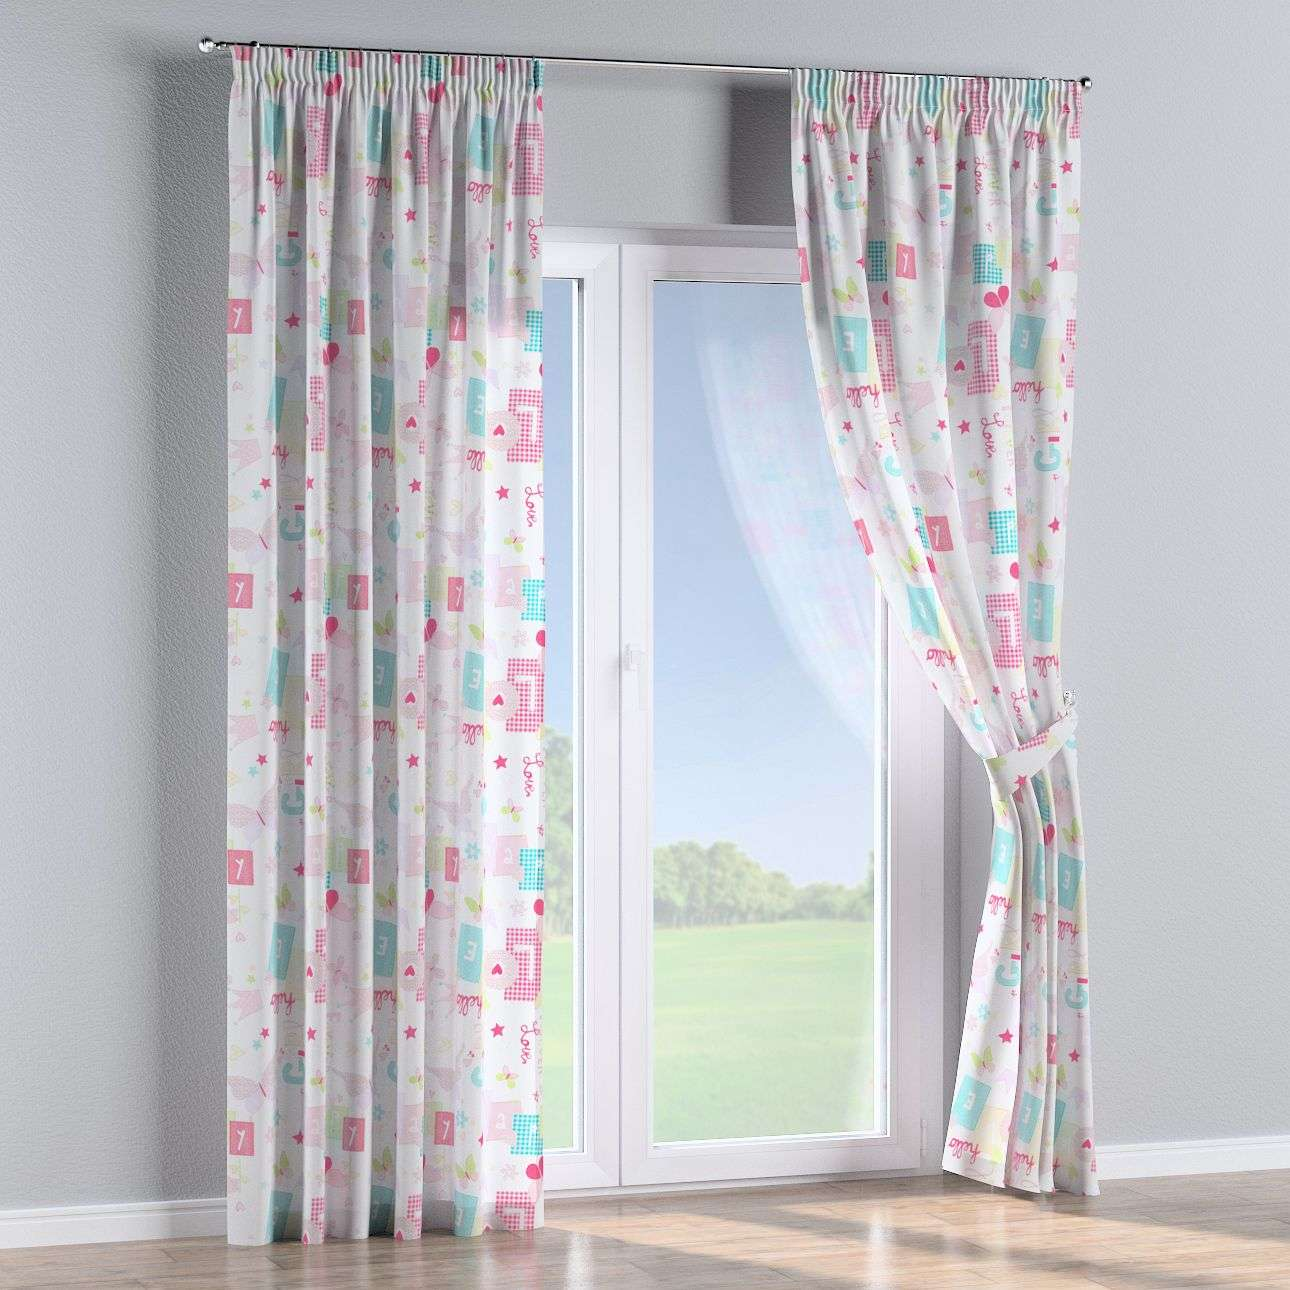 Pencil pleat curtains in collection Little World, fabric: 141-51